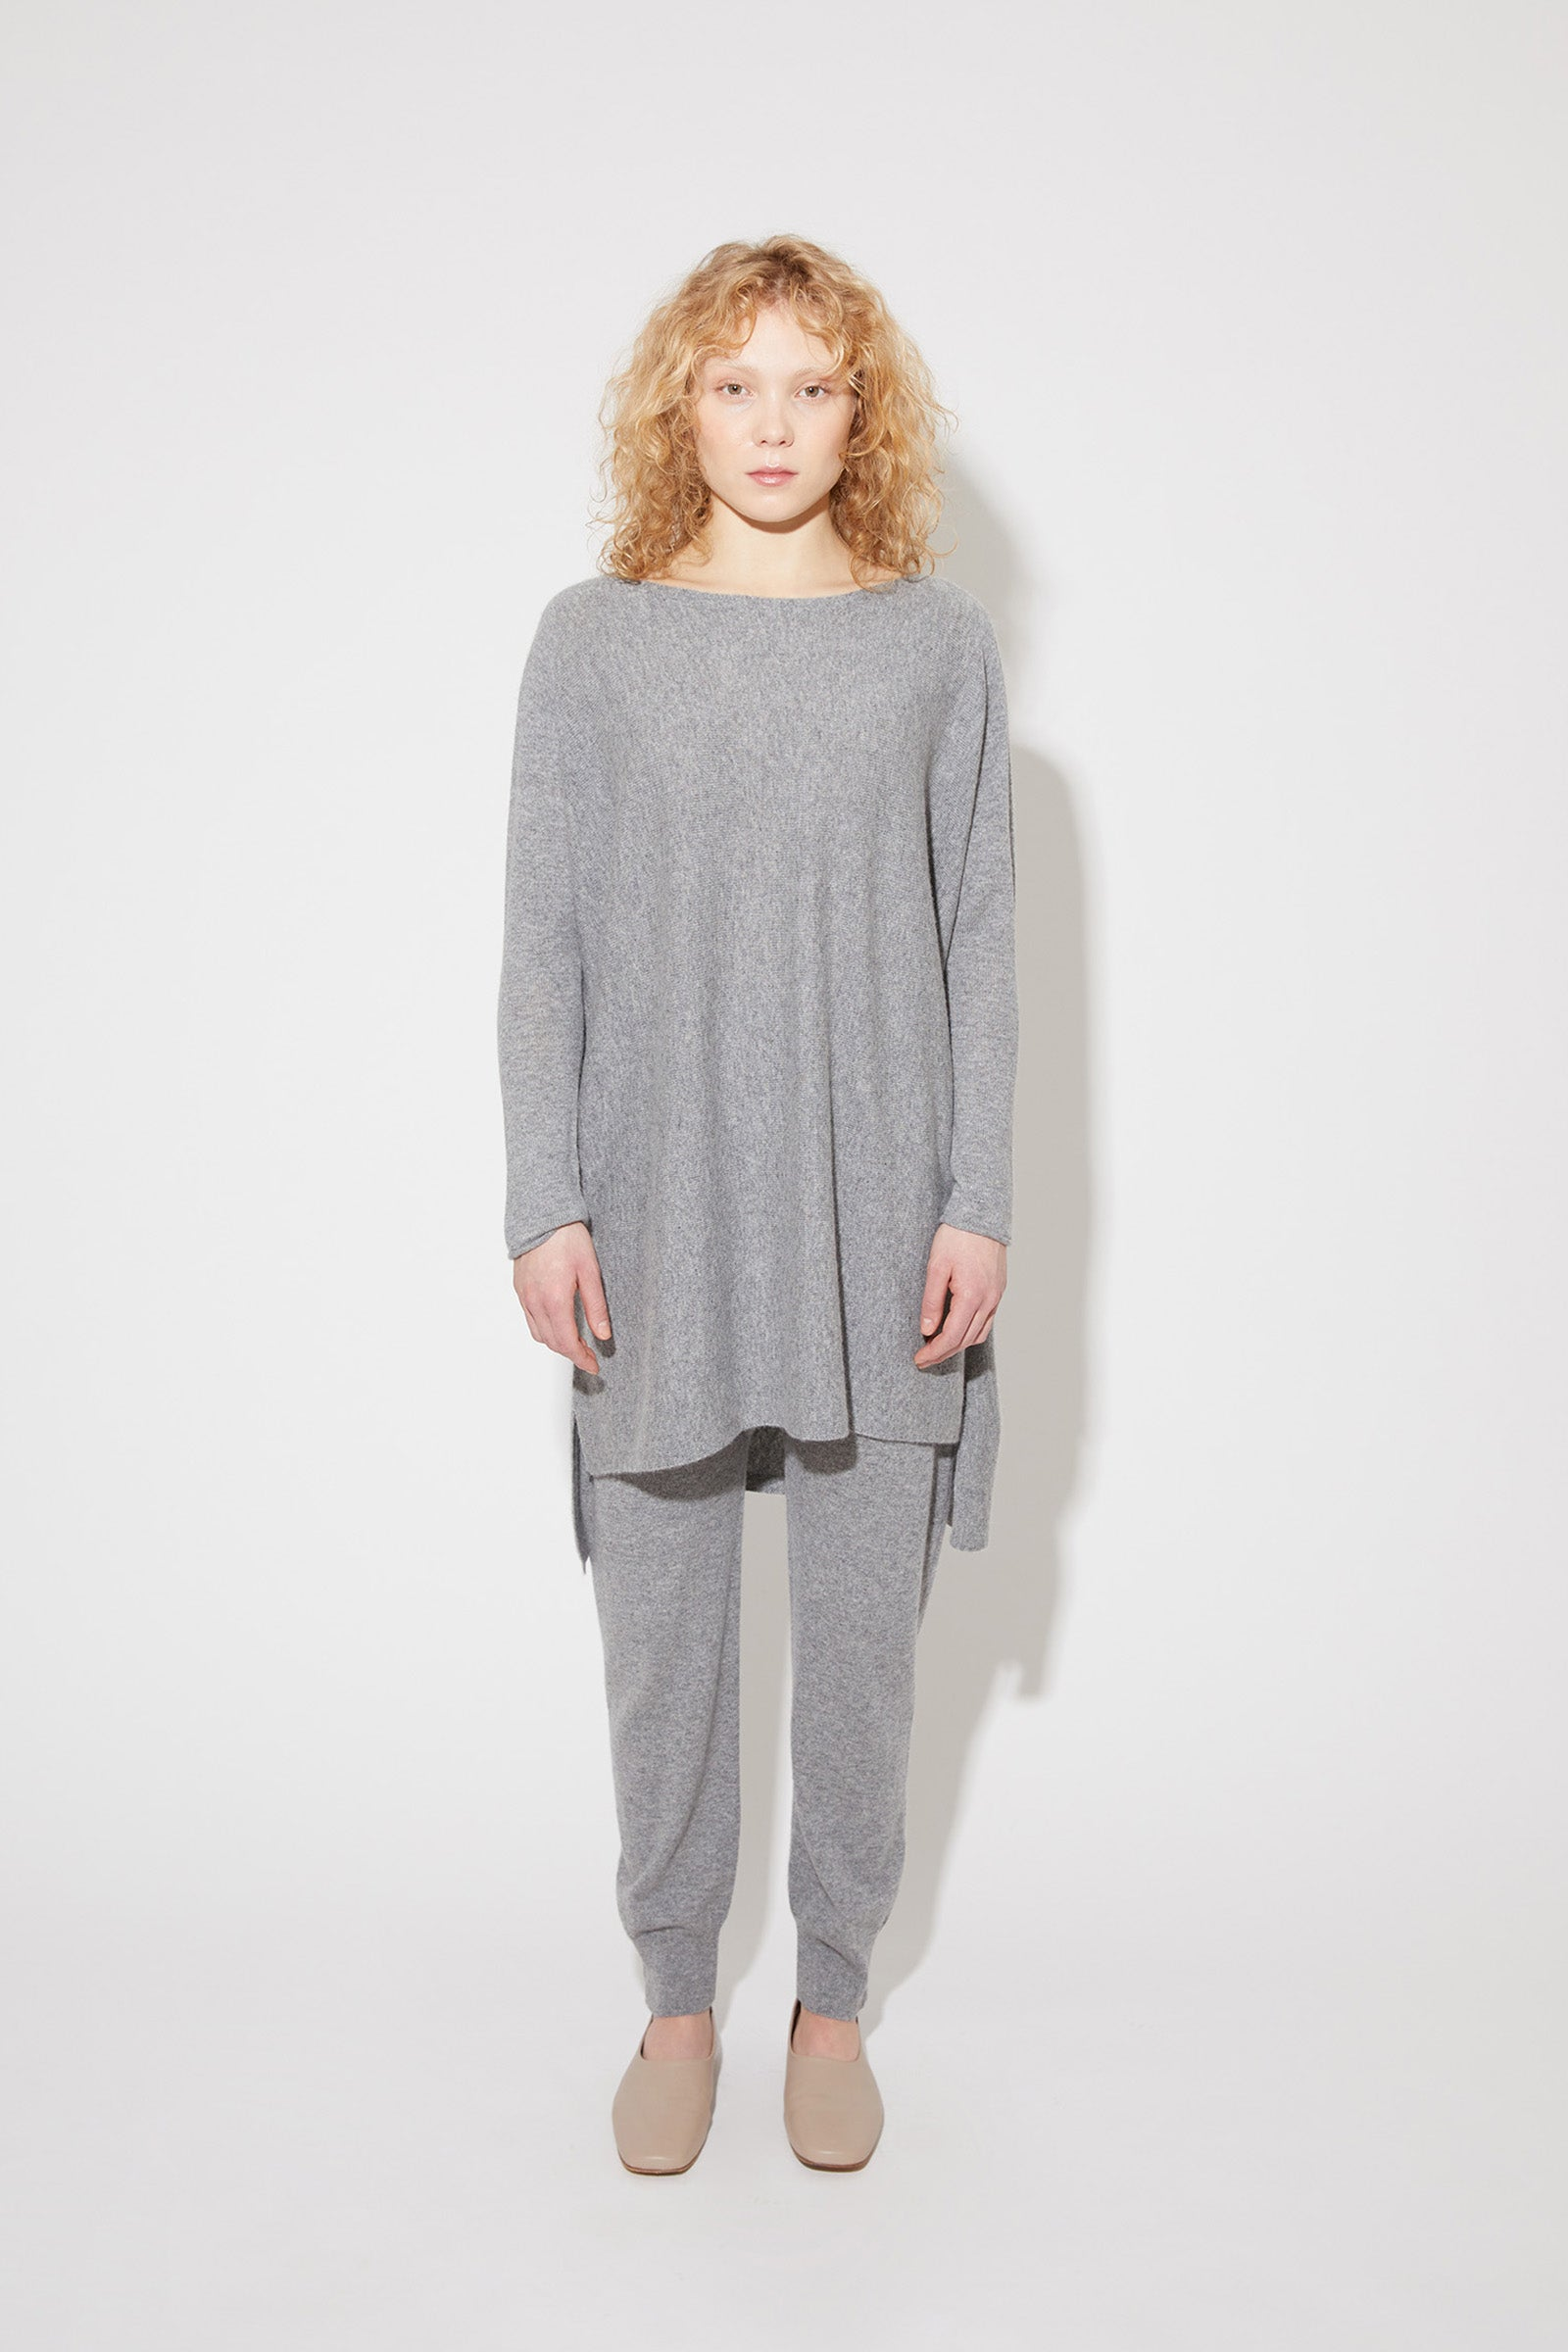 Eelia cashmere tunic in grey